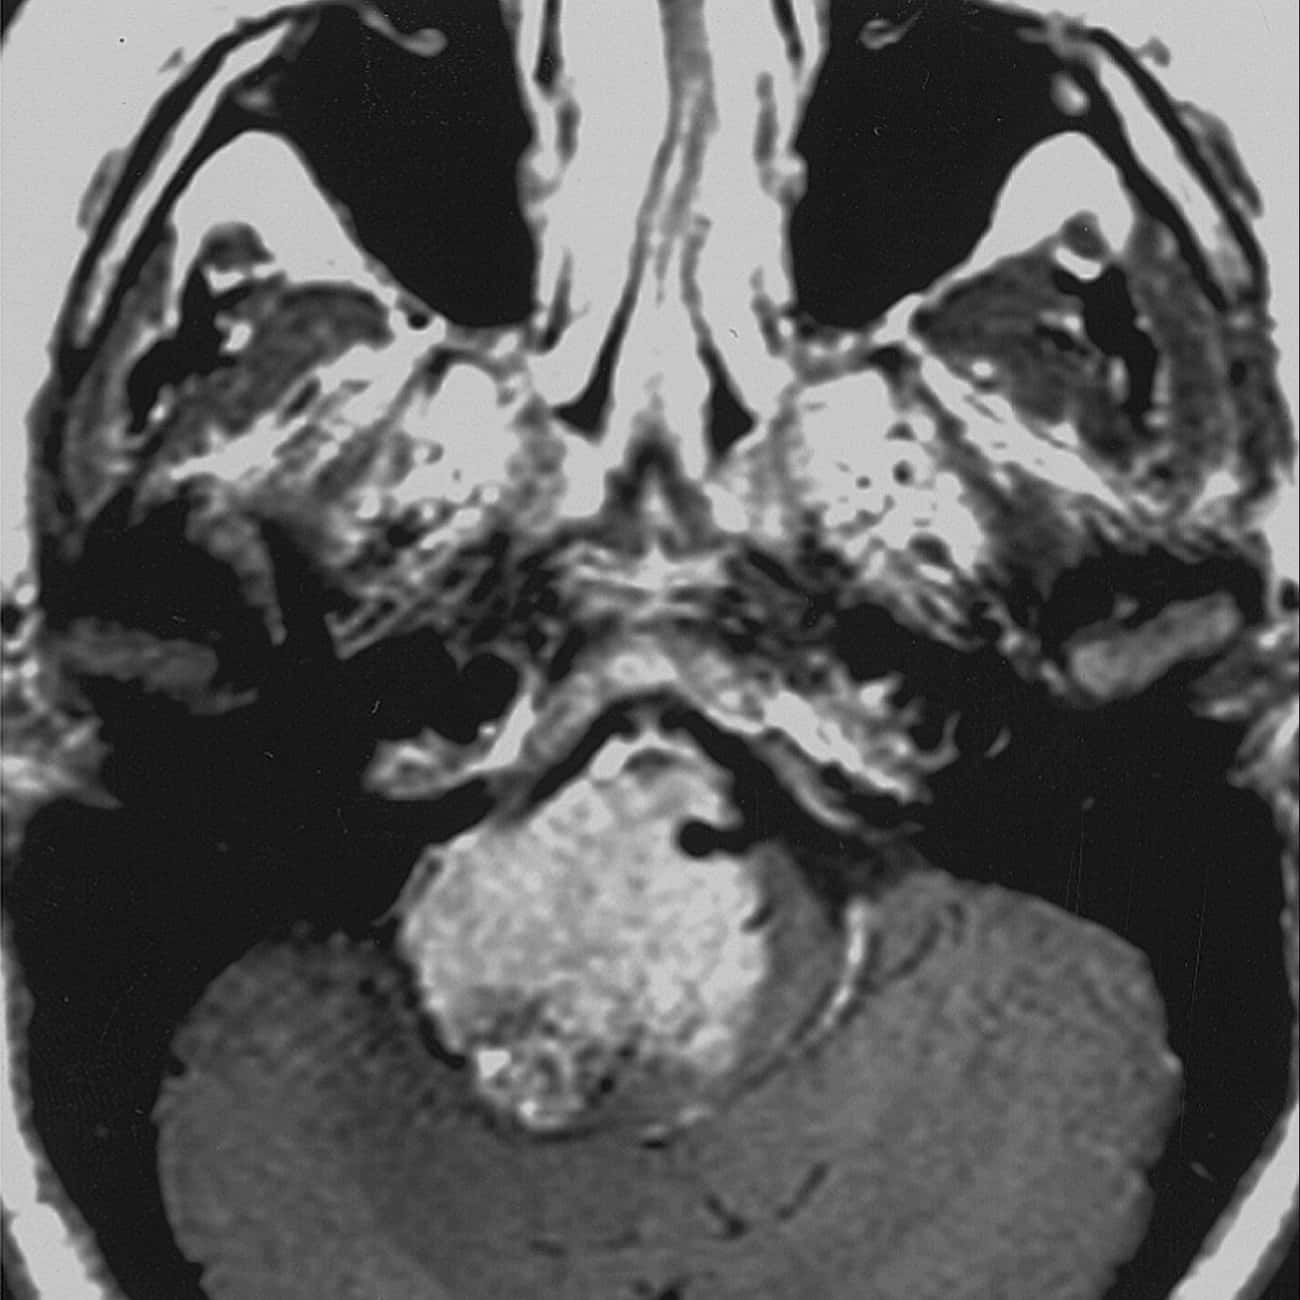 Choroid Plexus Papilloma is listed (or ranked) 4 on the list Central Nervous System Diseases & Nerve Disorders